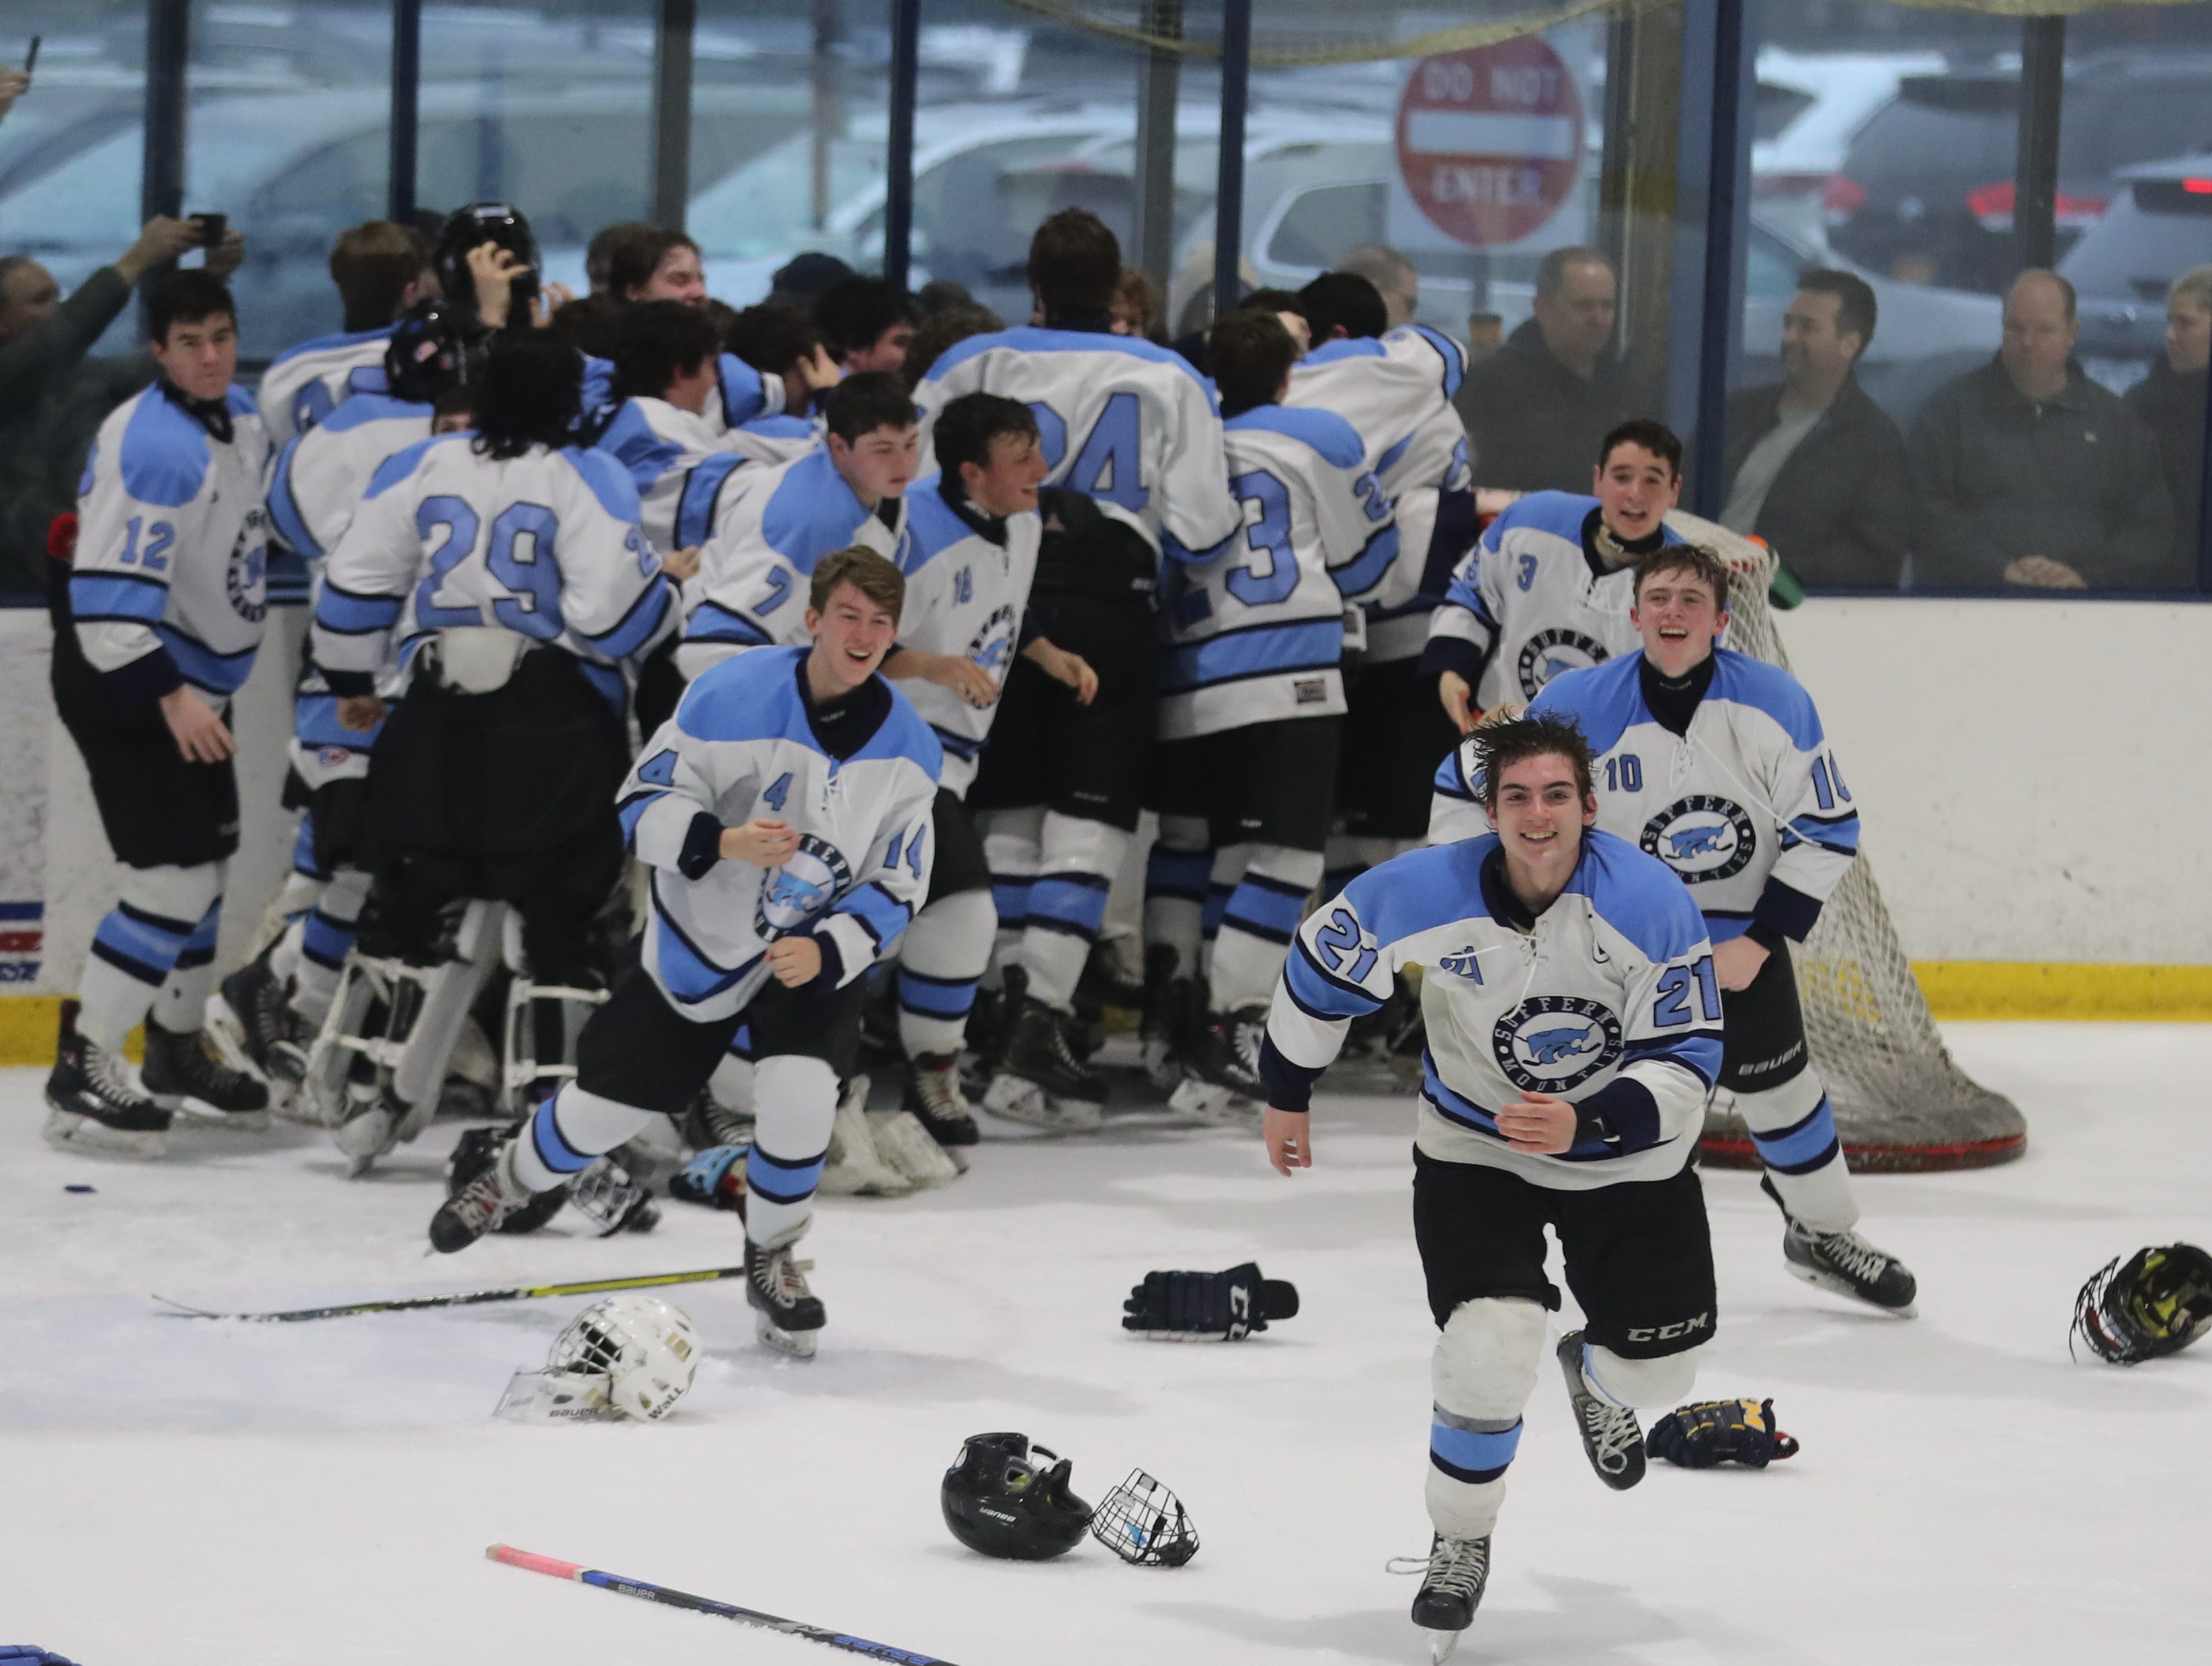 Suffern celebrates after defeating Mamaroneck 4-1 in the Section 1 Division 1 championship game at Sport-o-Rama in Monsey Feb. 24, 2019.